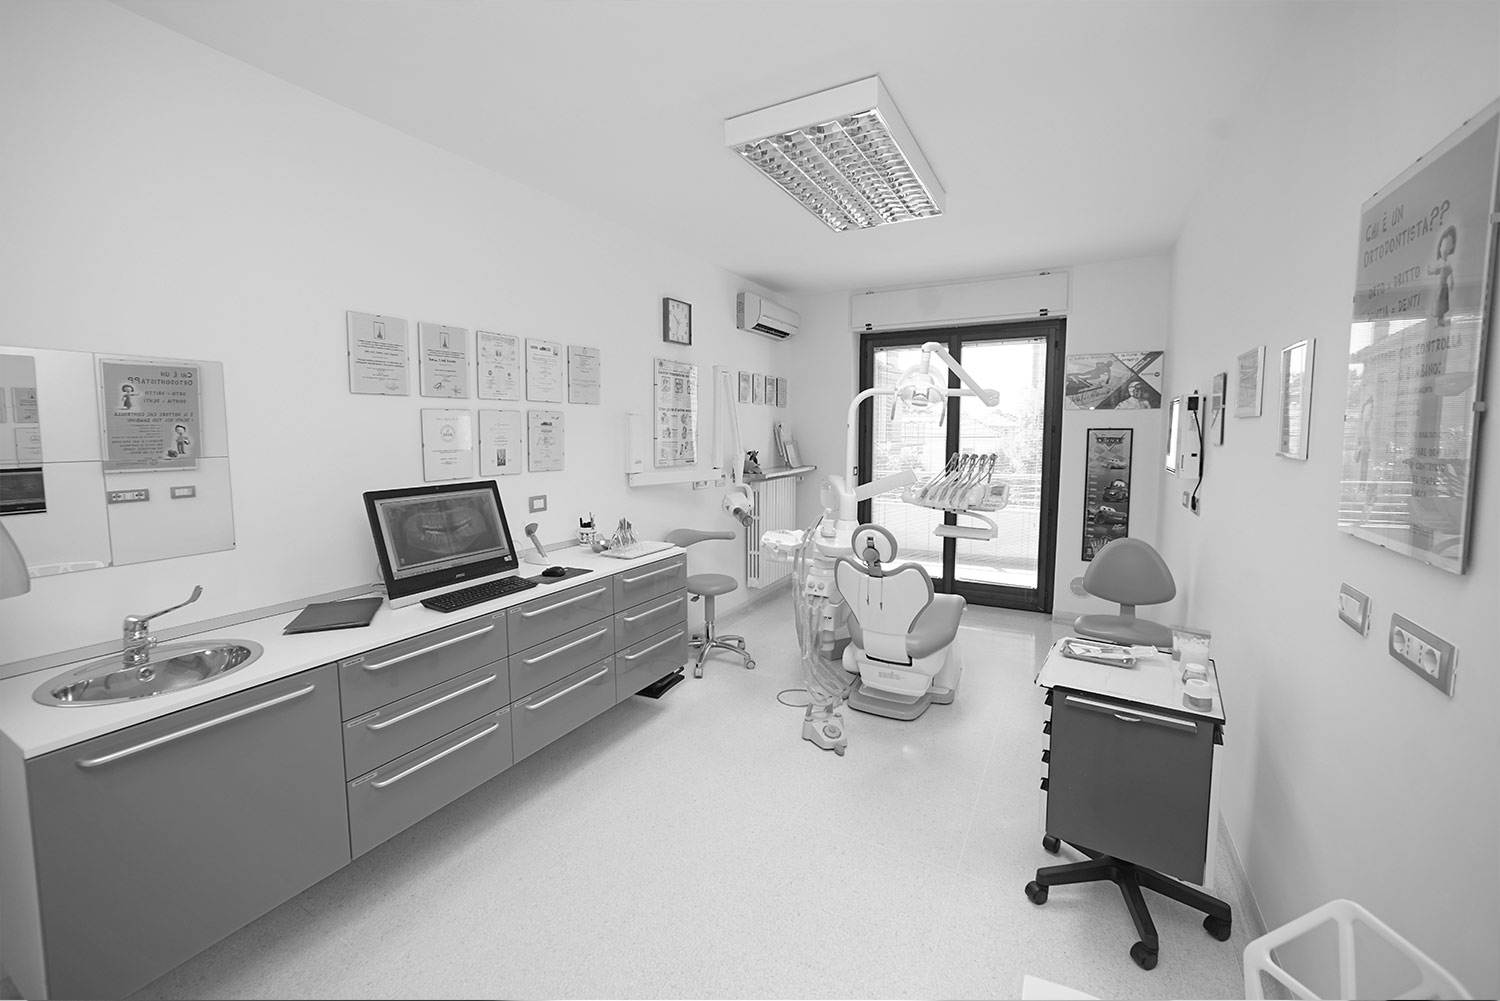 studio-dentistico-pinerolo-ruggeri-comba